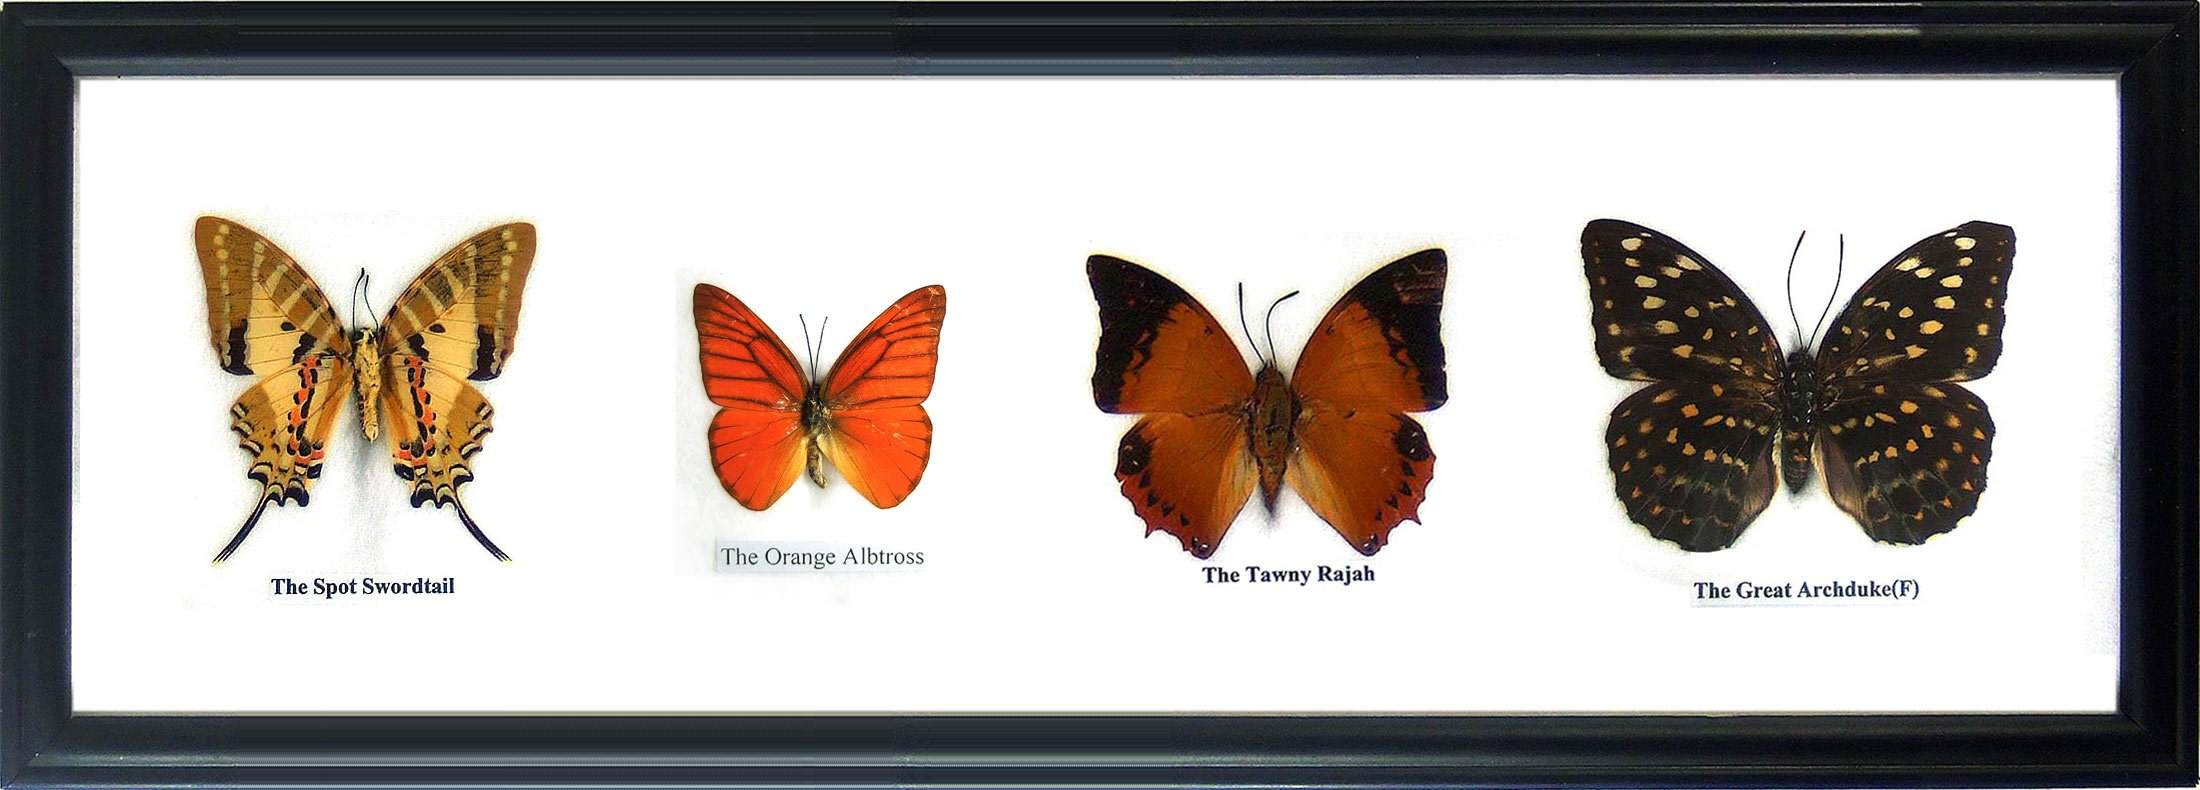 Set 3 x 4 Real Butterfly Display Taxidermy in Horizontal Frame for Collectible Gift by Thai Productz